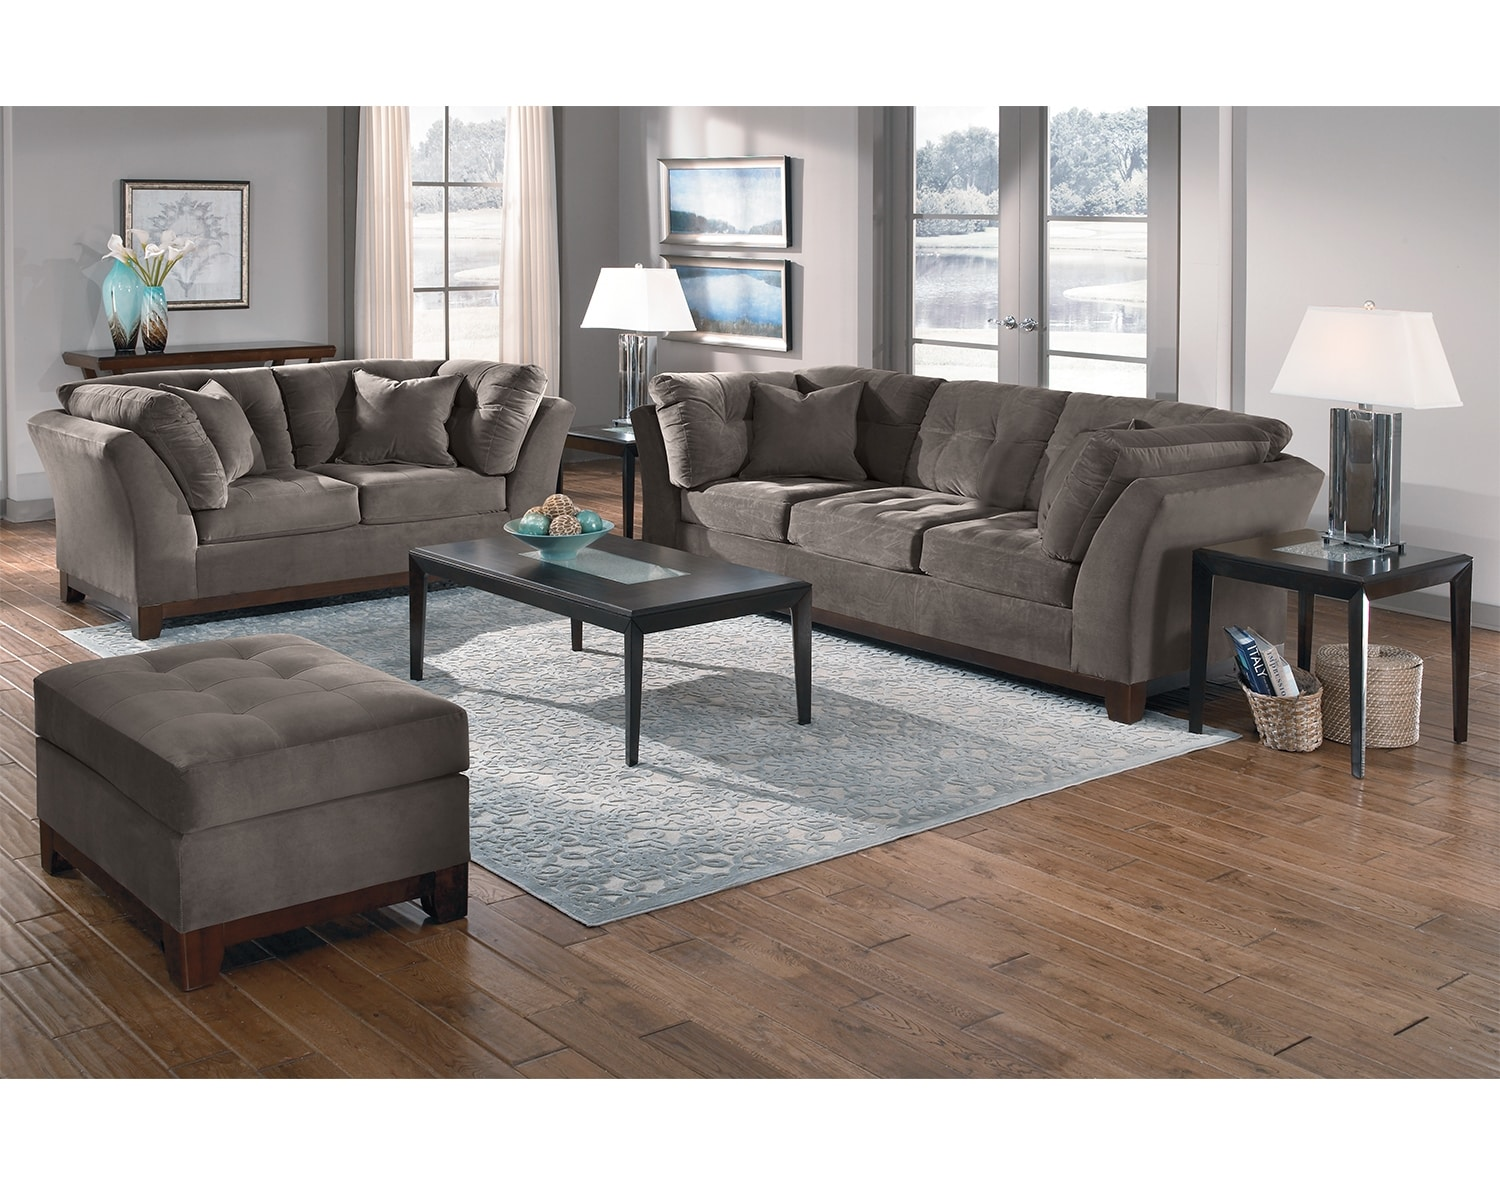 Living room collections american signature furniture for Signature furniture